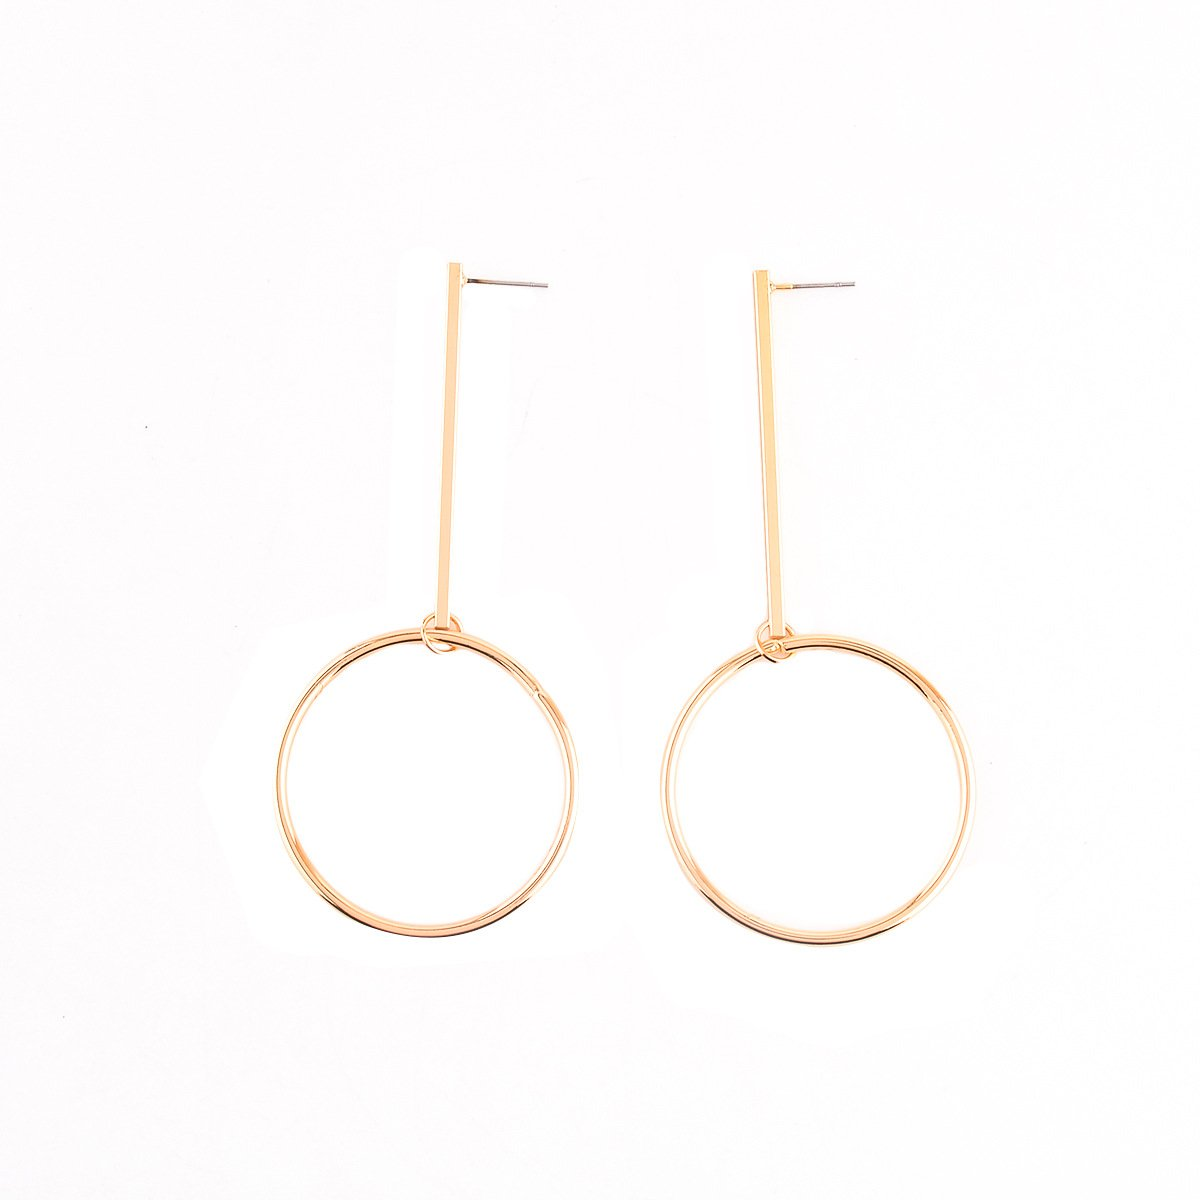 CHUYUN Cool Simple Big Circle Round Drop Dangle Hoop Earring Charm Gift